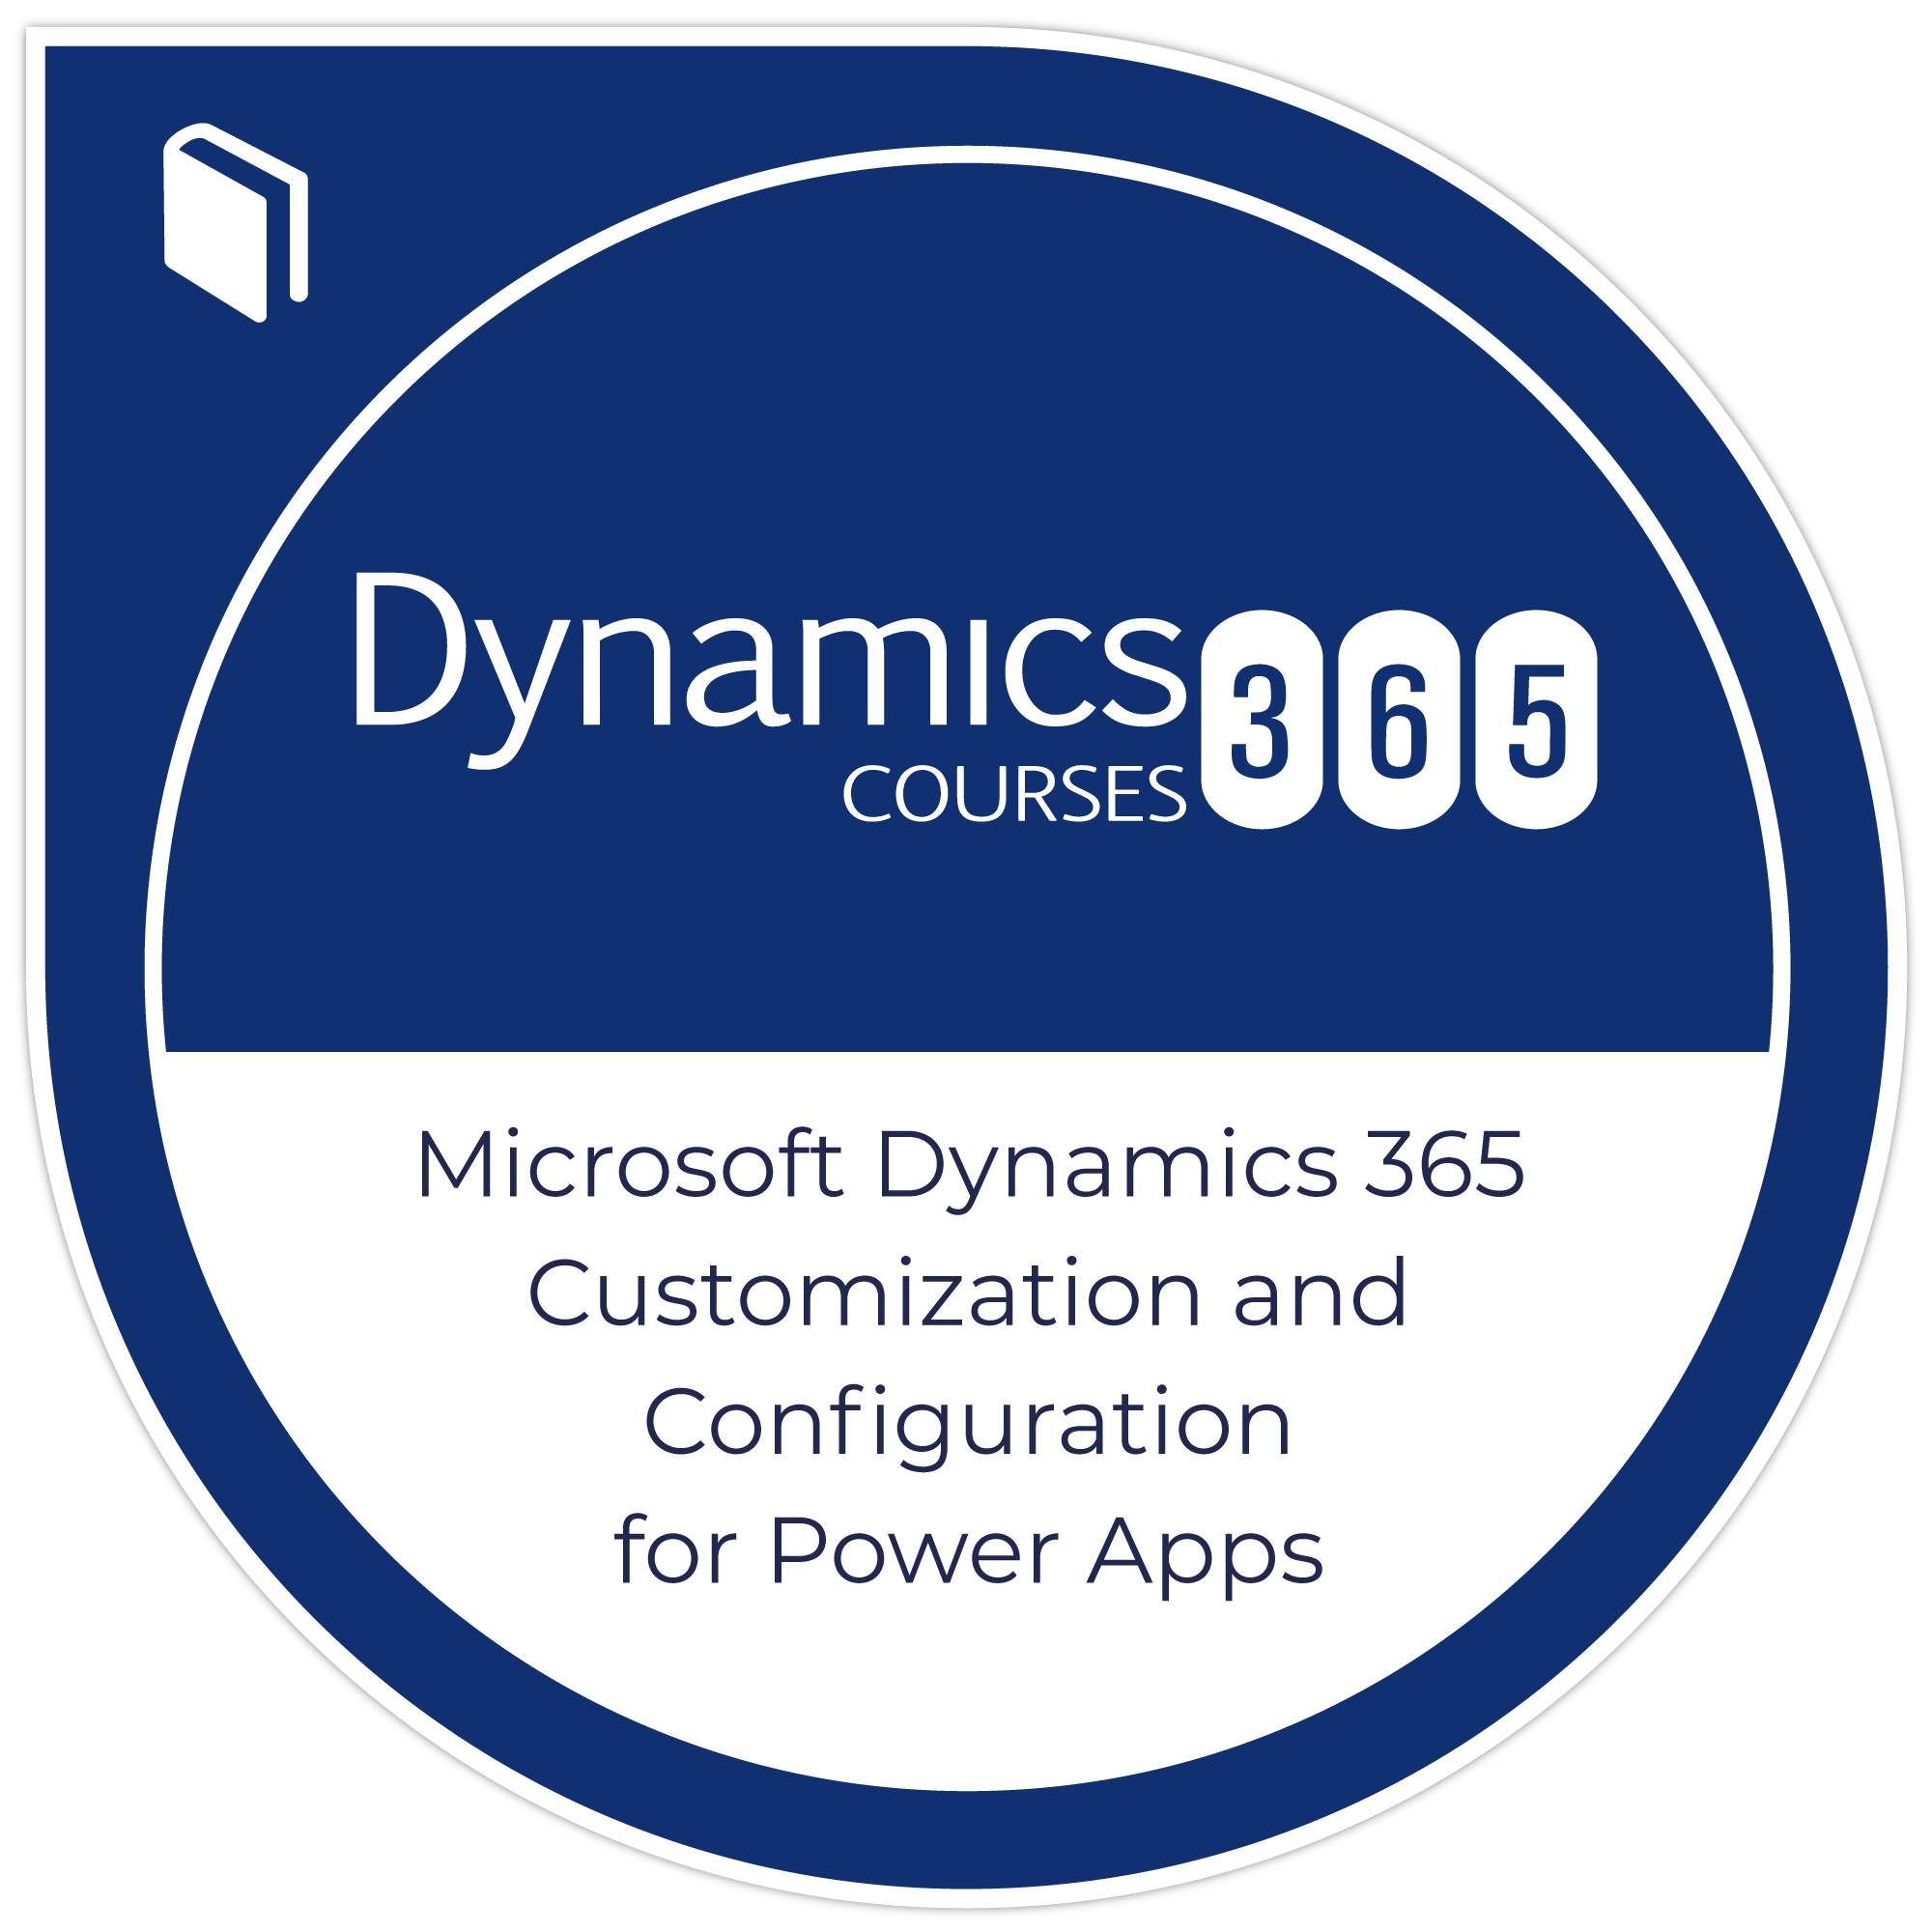 Microsoft Dynamics 365 Customization and Configuration for Power Apps